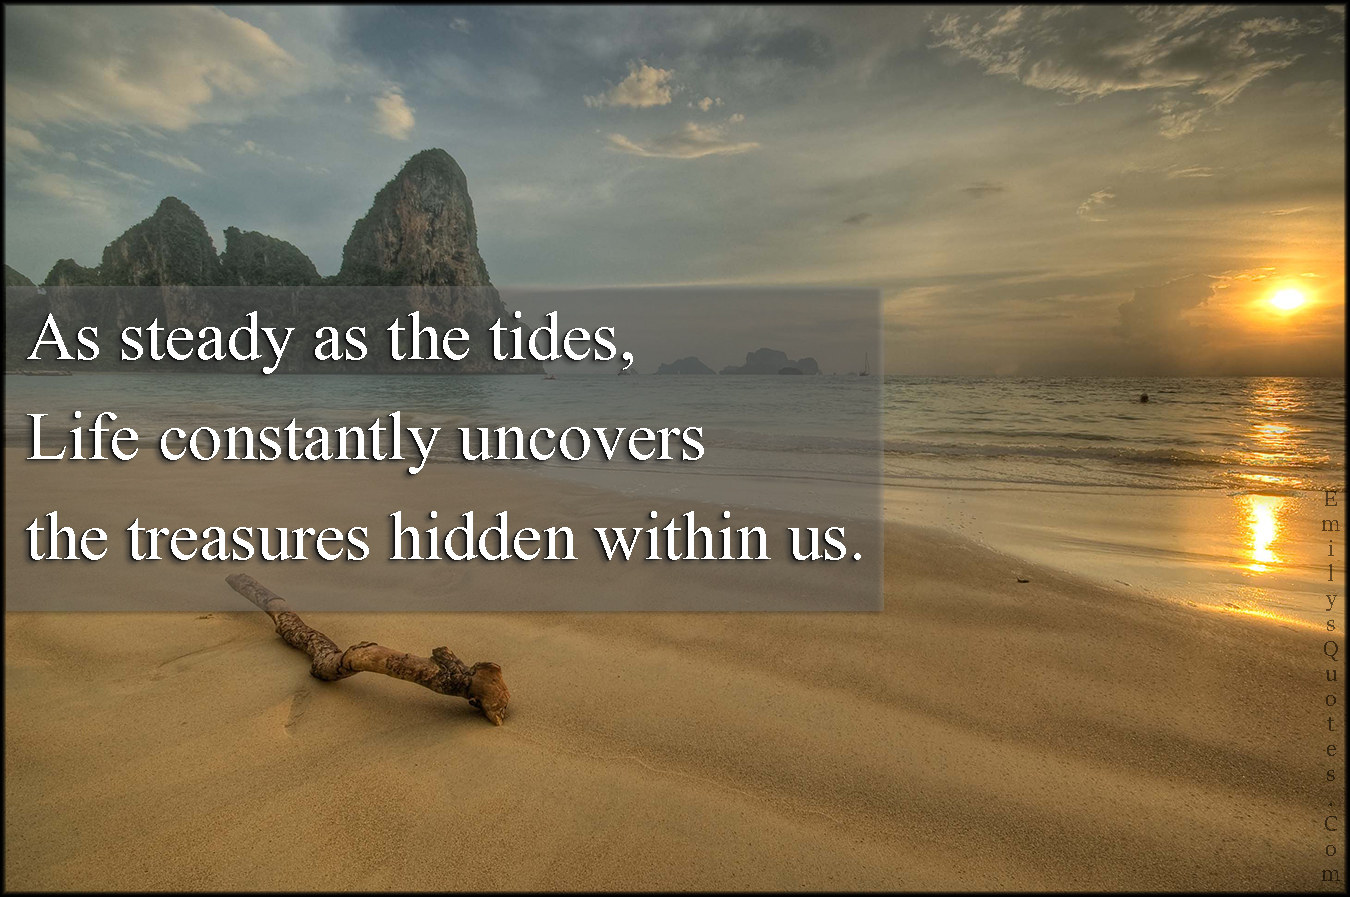 EmilysQuotes.Com - steady, tides, life, uncover, treasures, hidden, inspirational, unknown